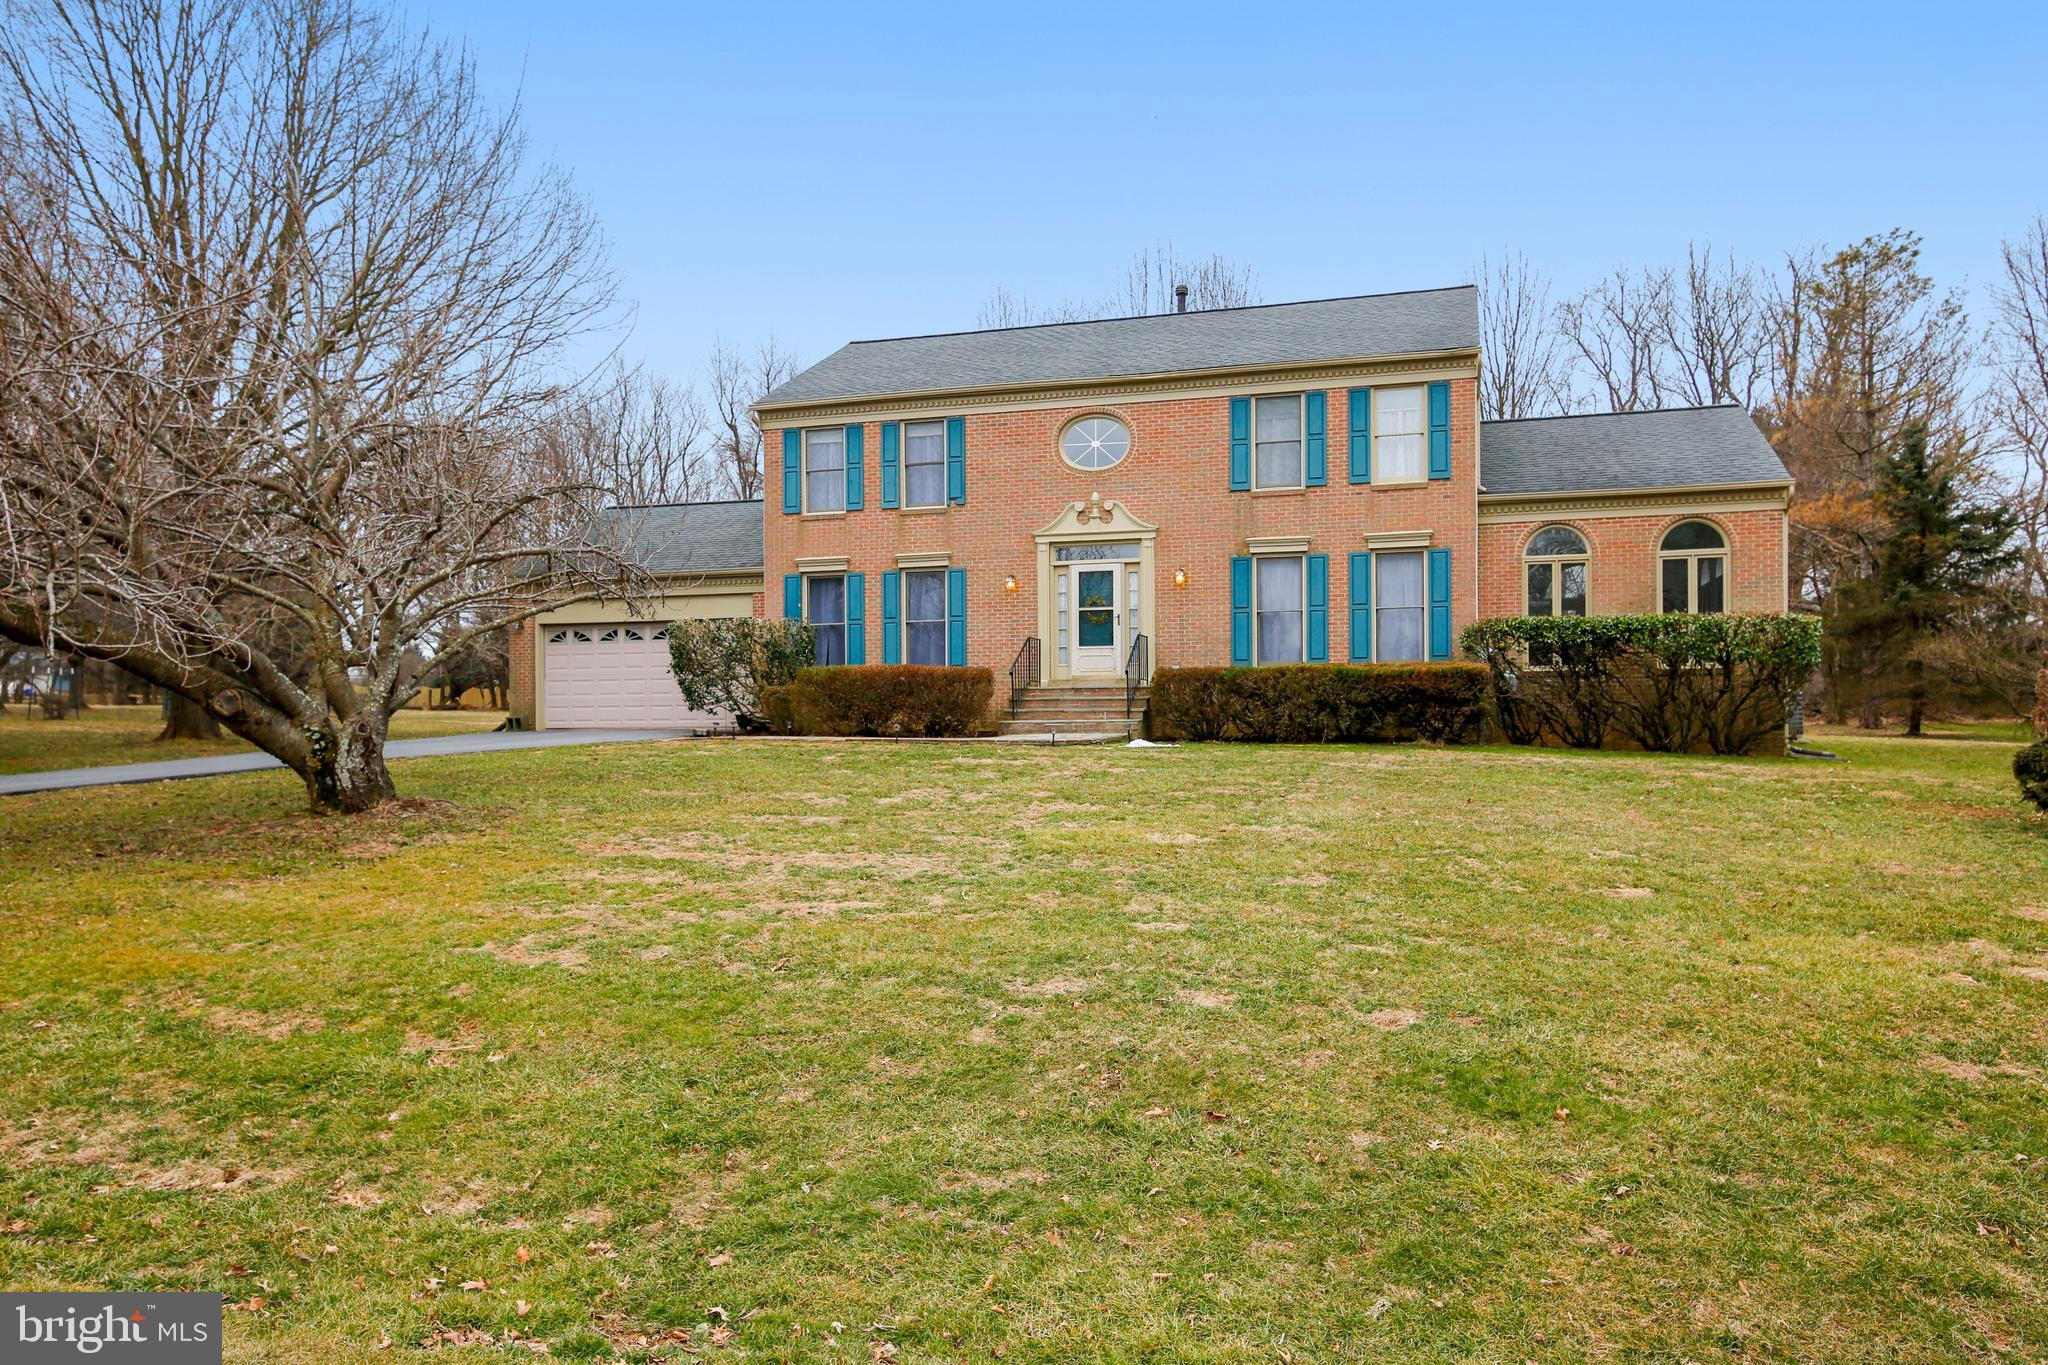 5816 WINEGROVE COURT, ROCKVILLE, MD 20855